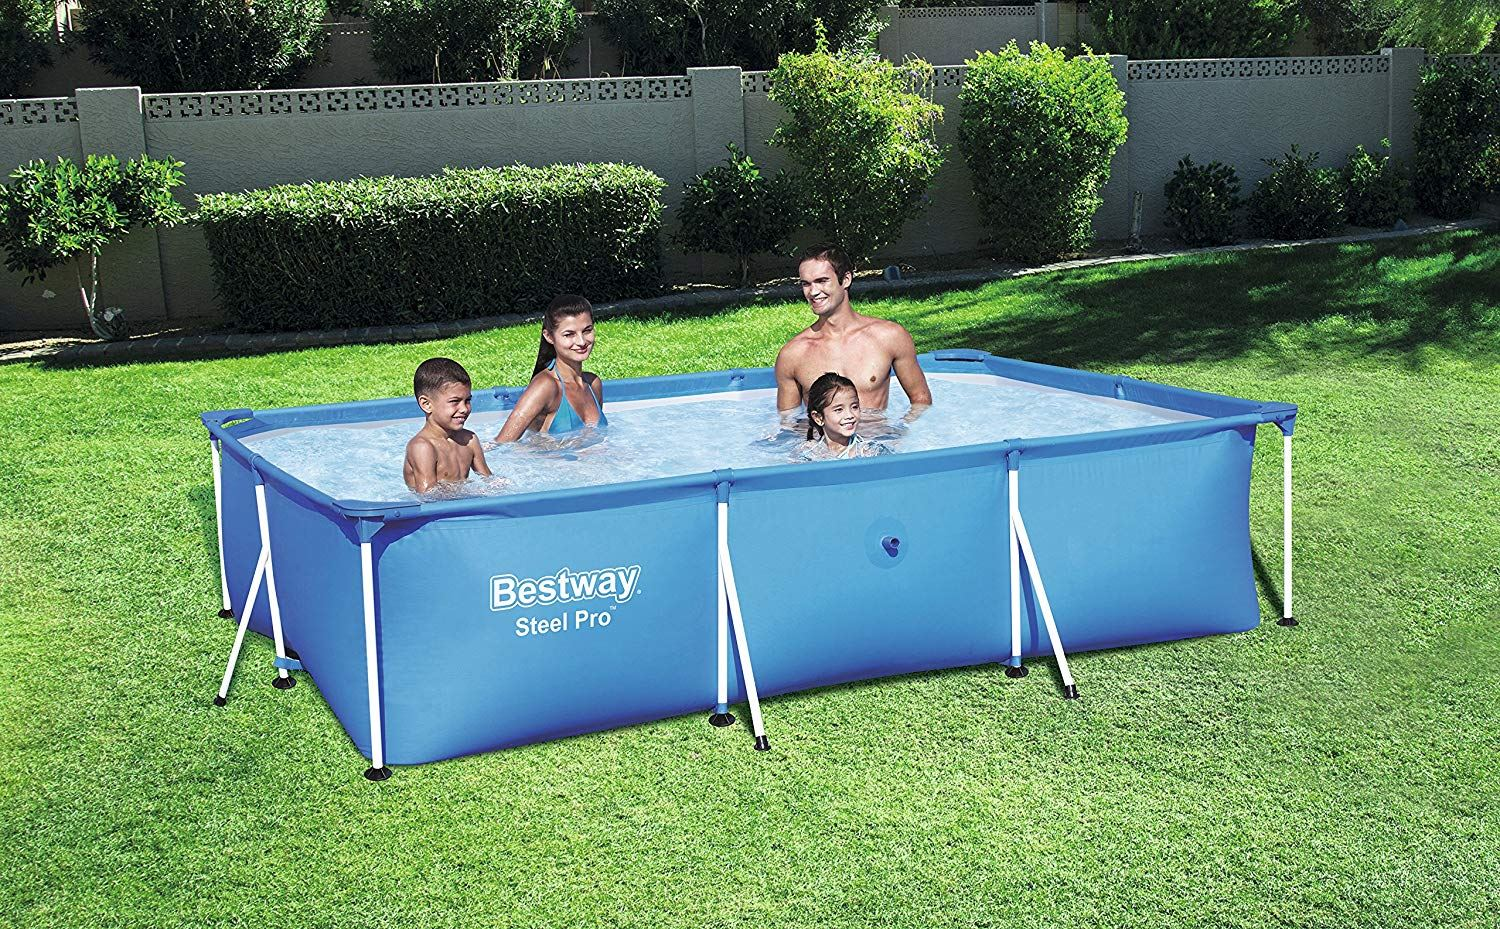 Details about New Bestway Rectangular Swimming Pool with Steel Frame 3  Sizes Blue Backyard✓